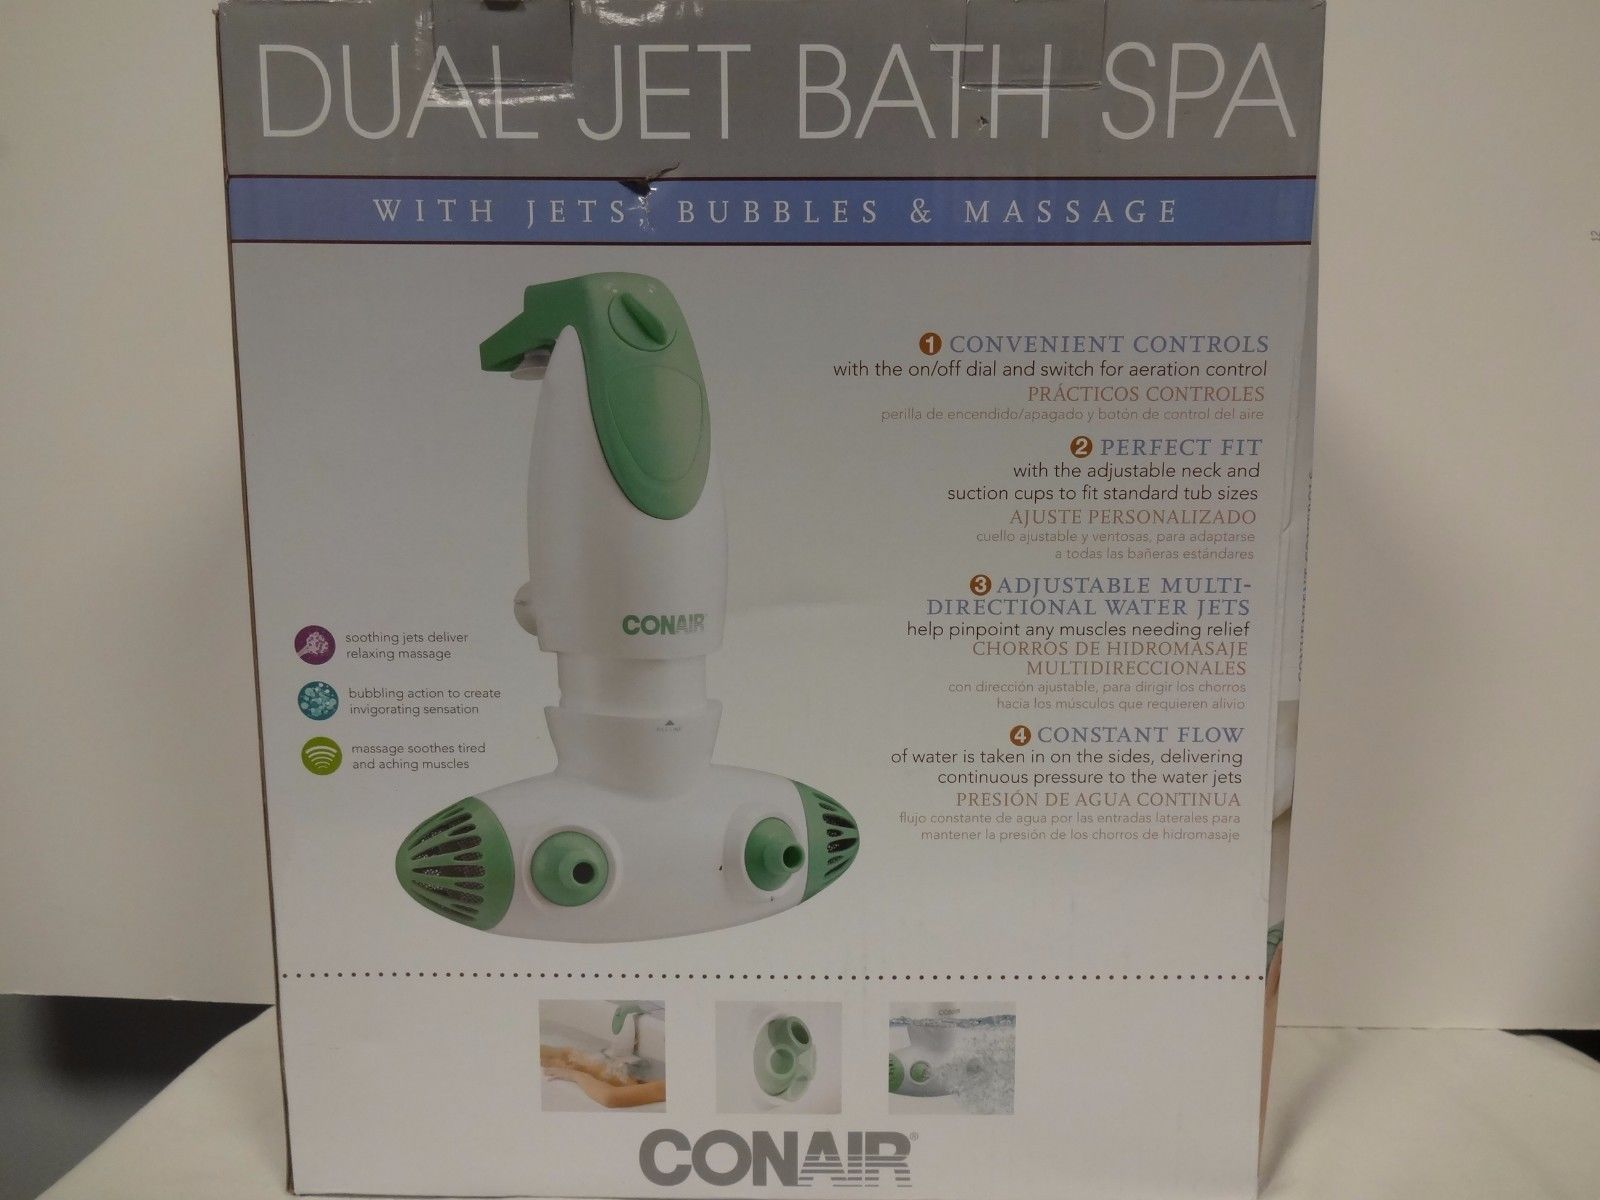 Magnificent Conair Jet Bath Spa Images - Bathroom and Shower Ideas ...